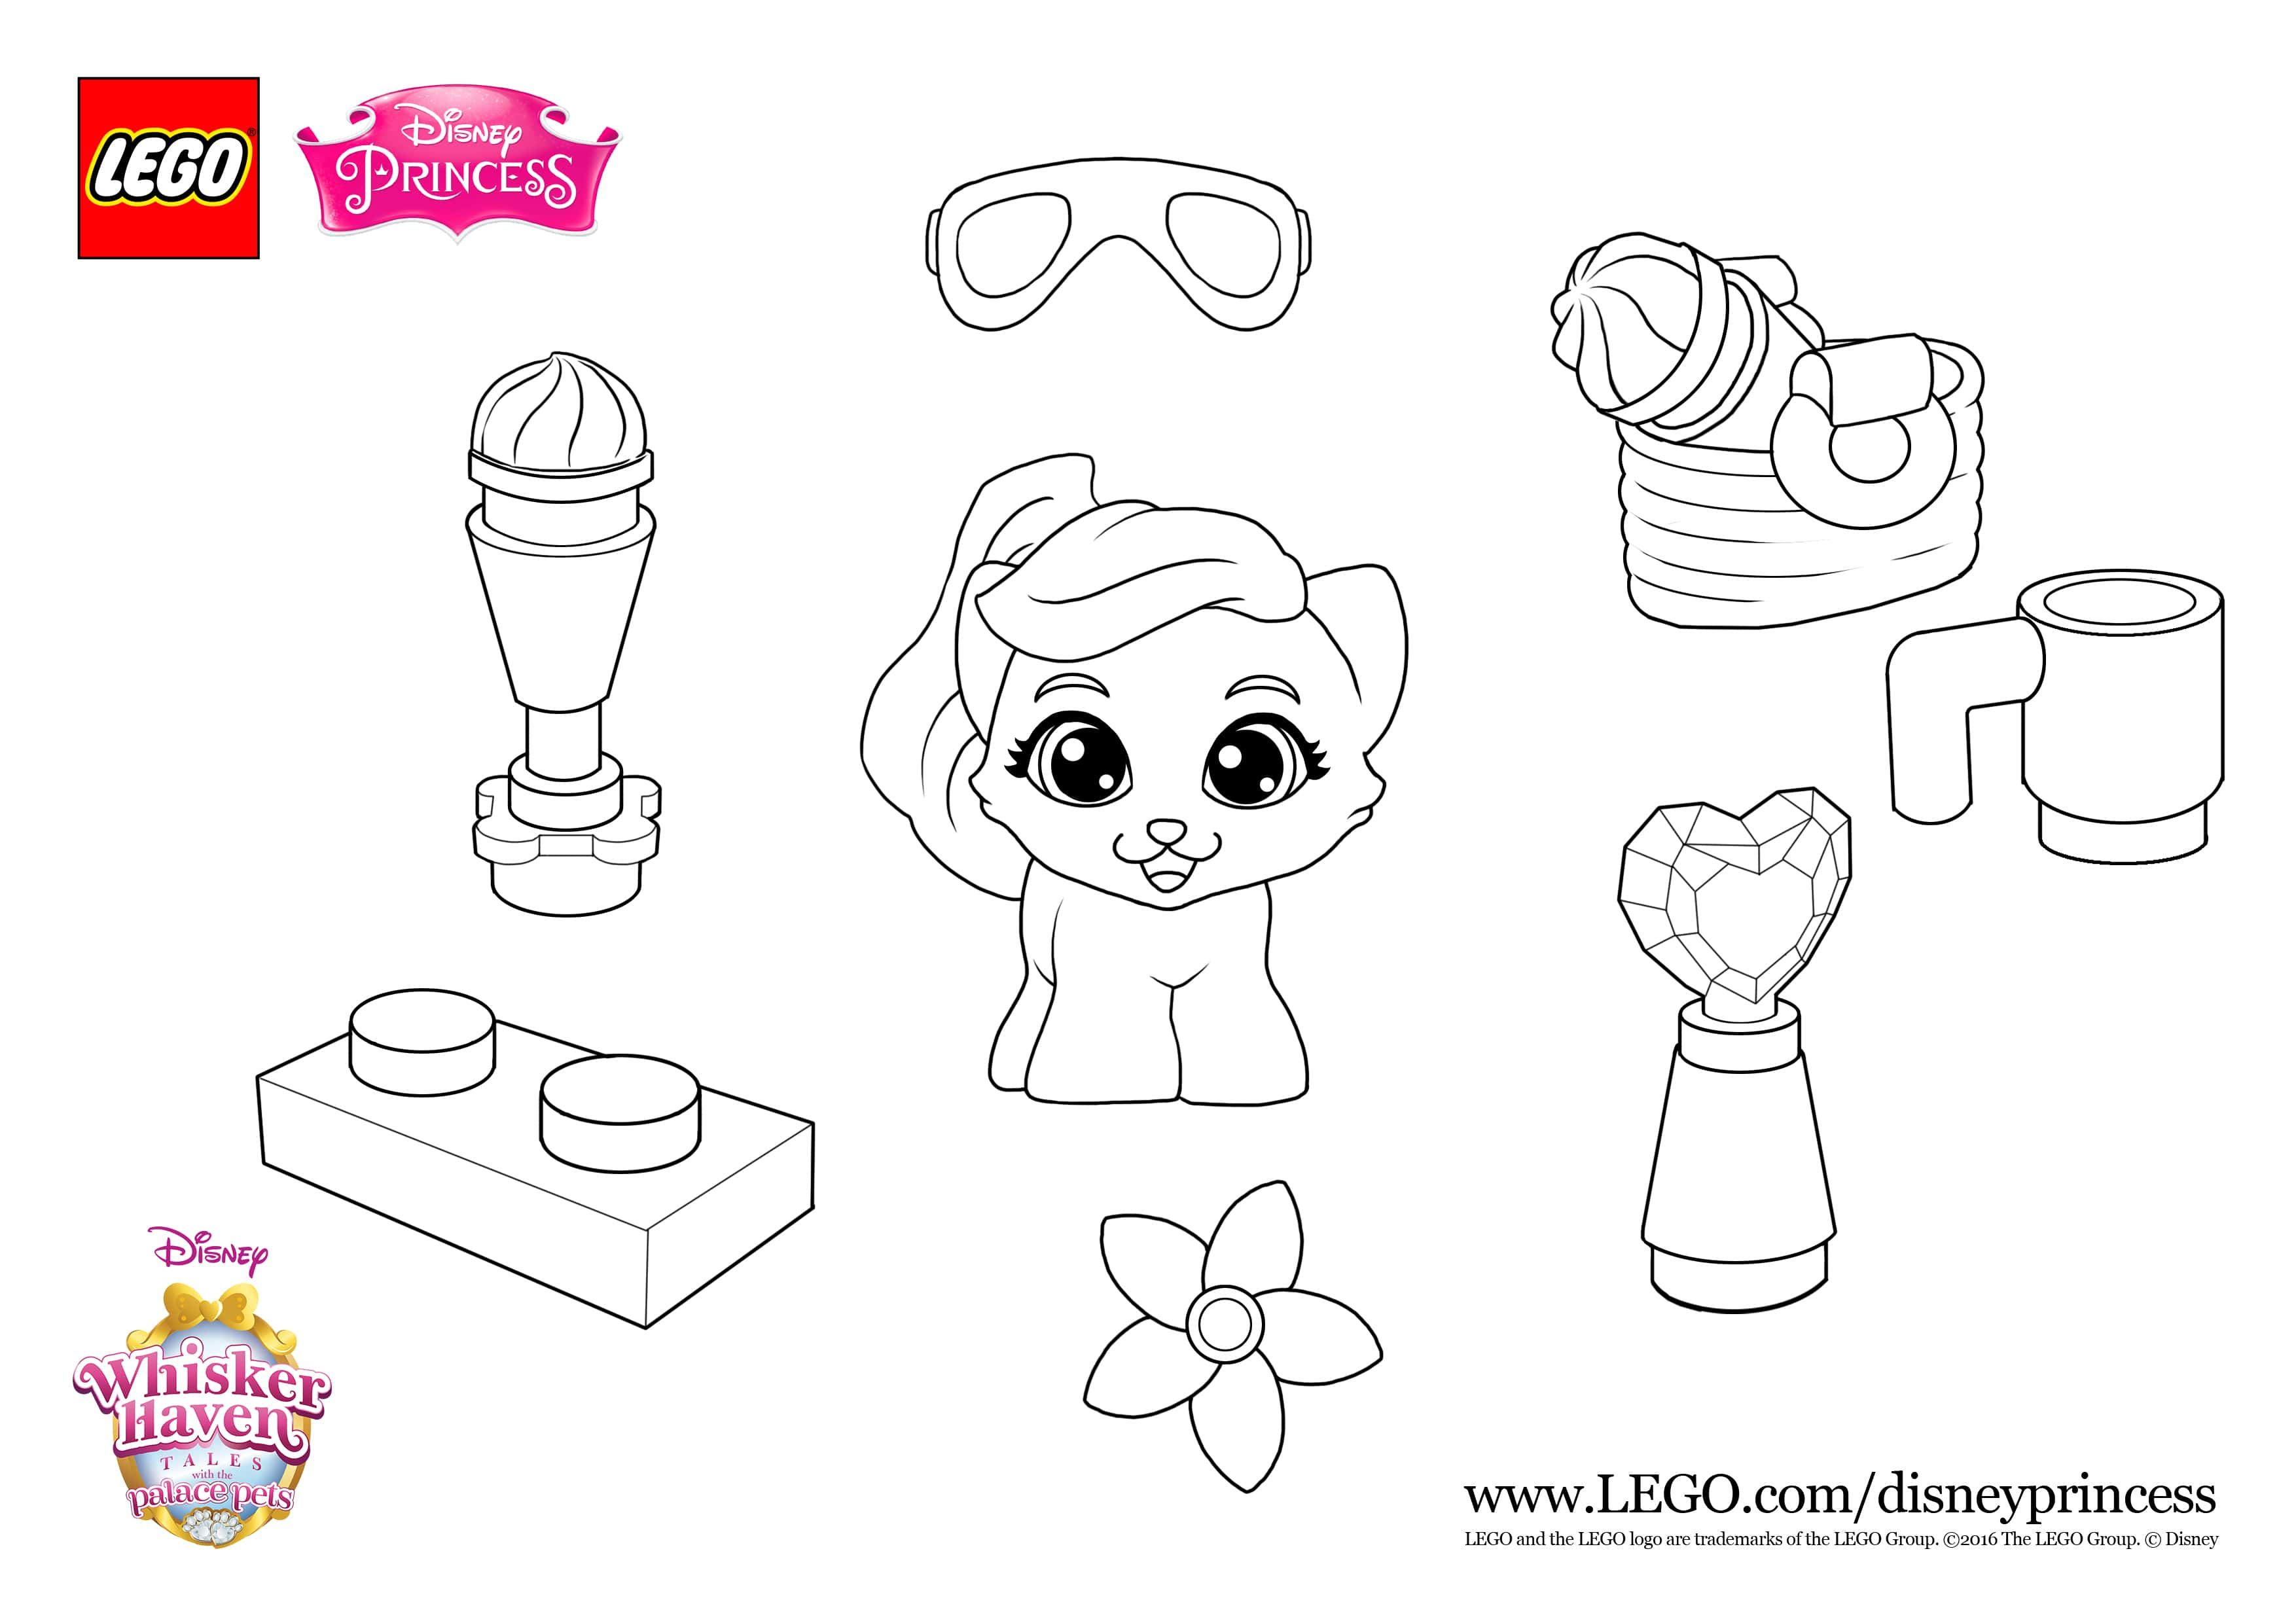 Print This Colouring In Sheet With Lego Disney Whisker Haven